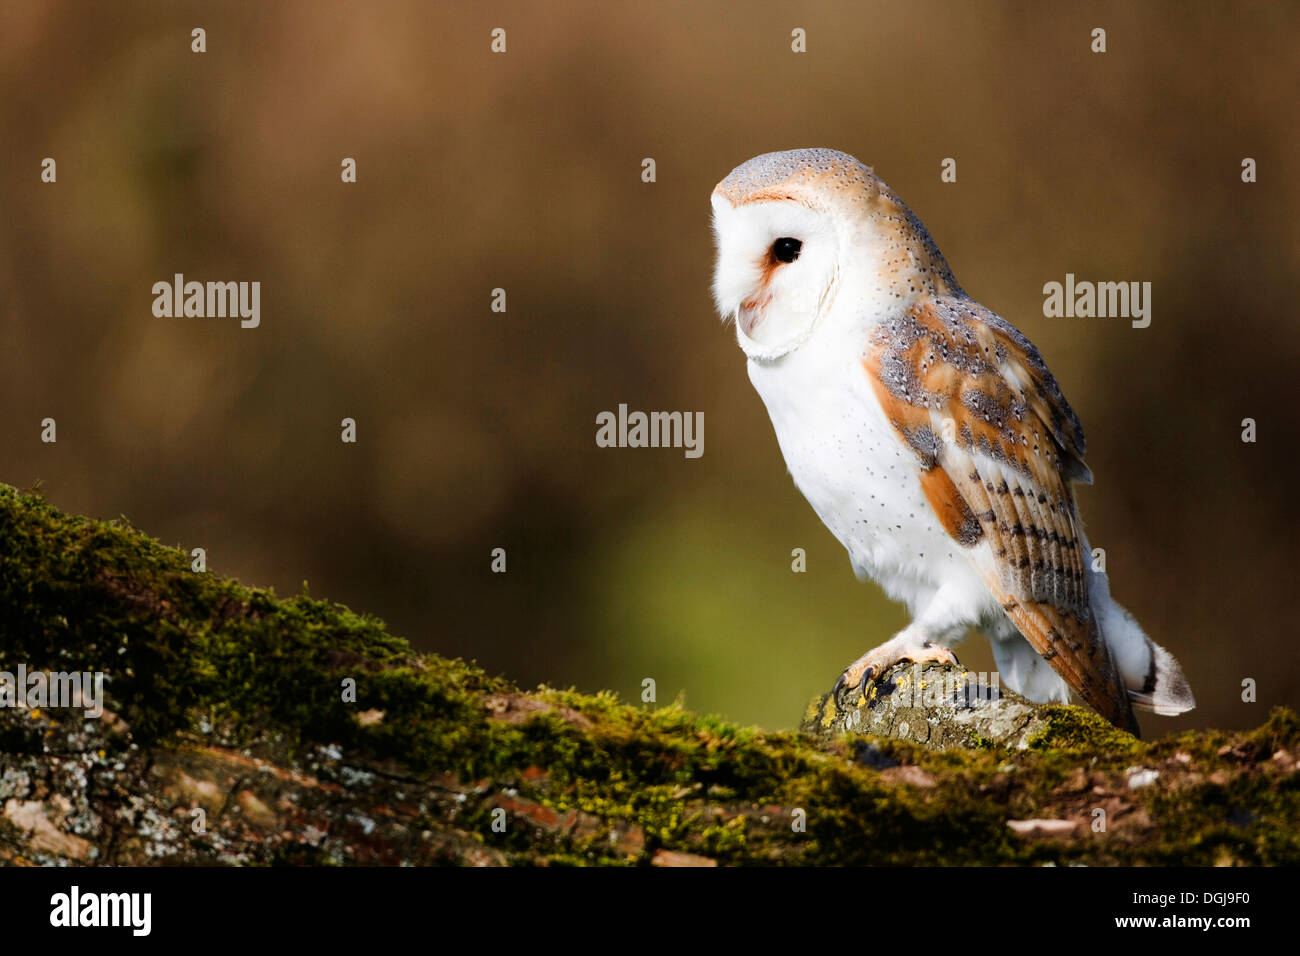 A barn owl perched majestically and silently. - Stock Image